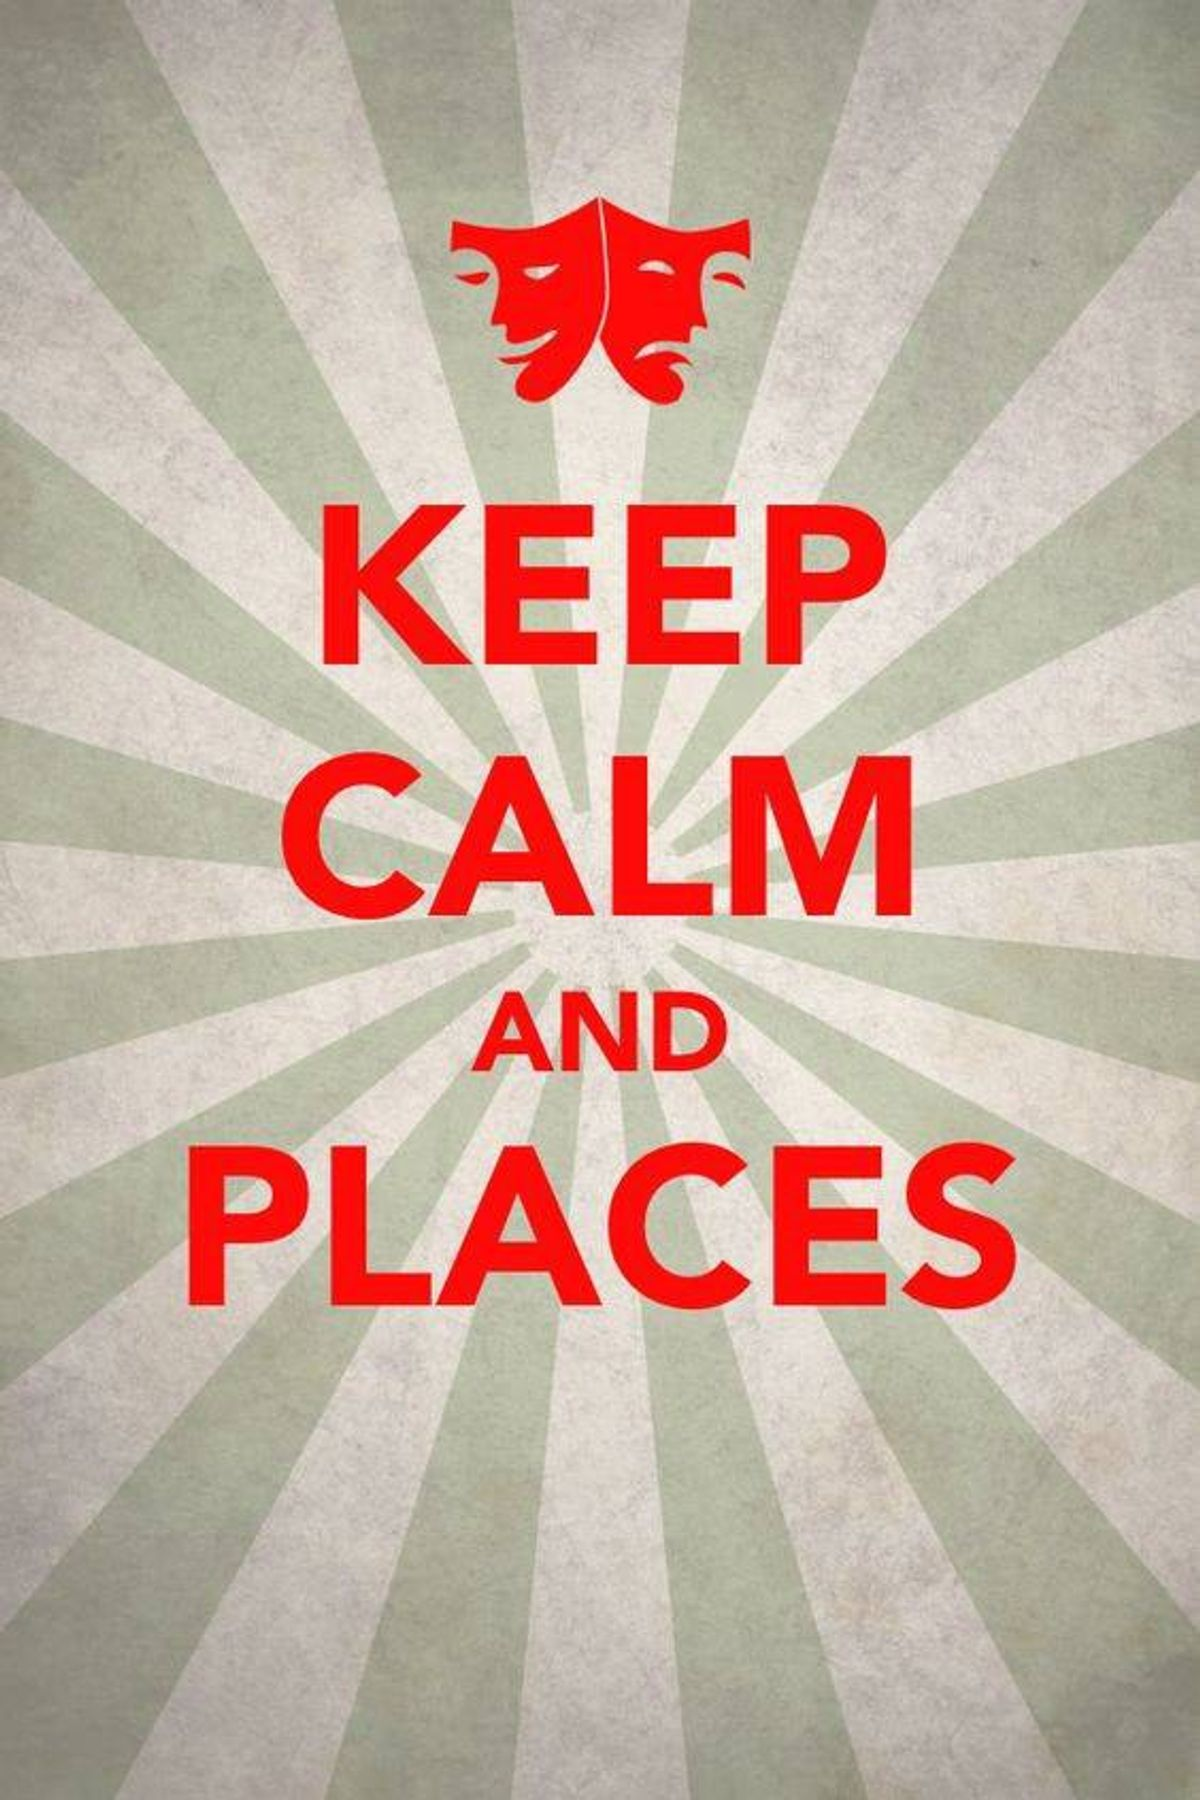 Places!: It's More Than Just A Word